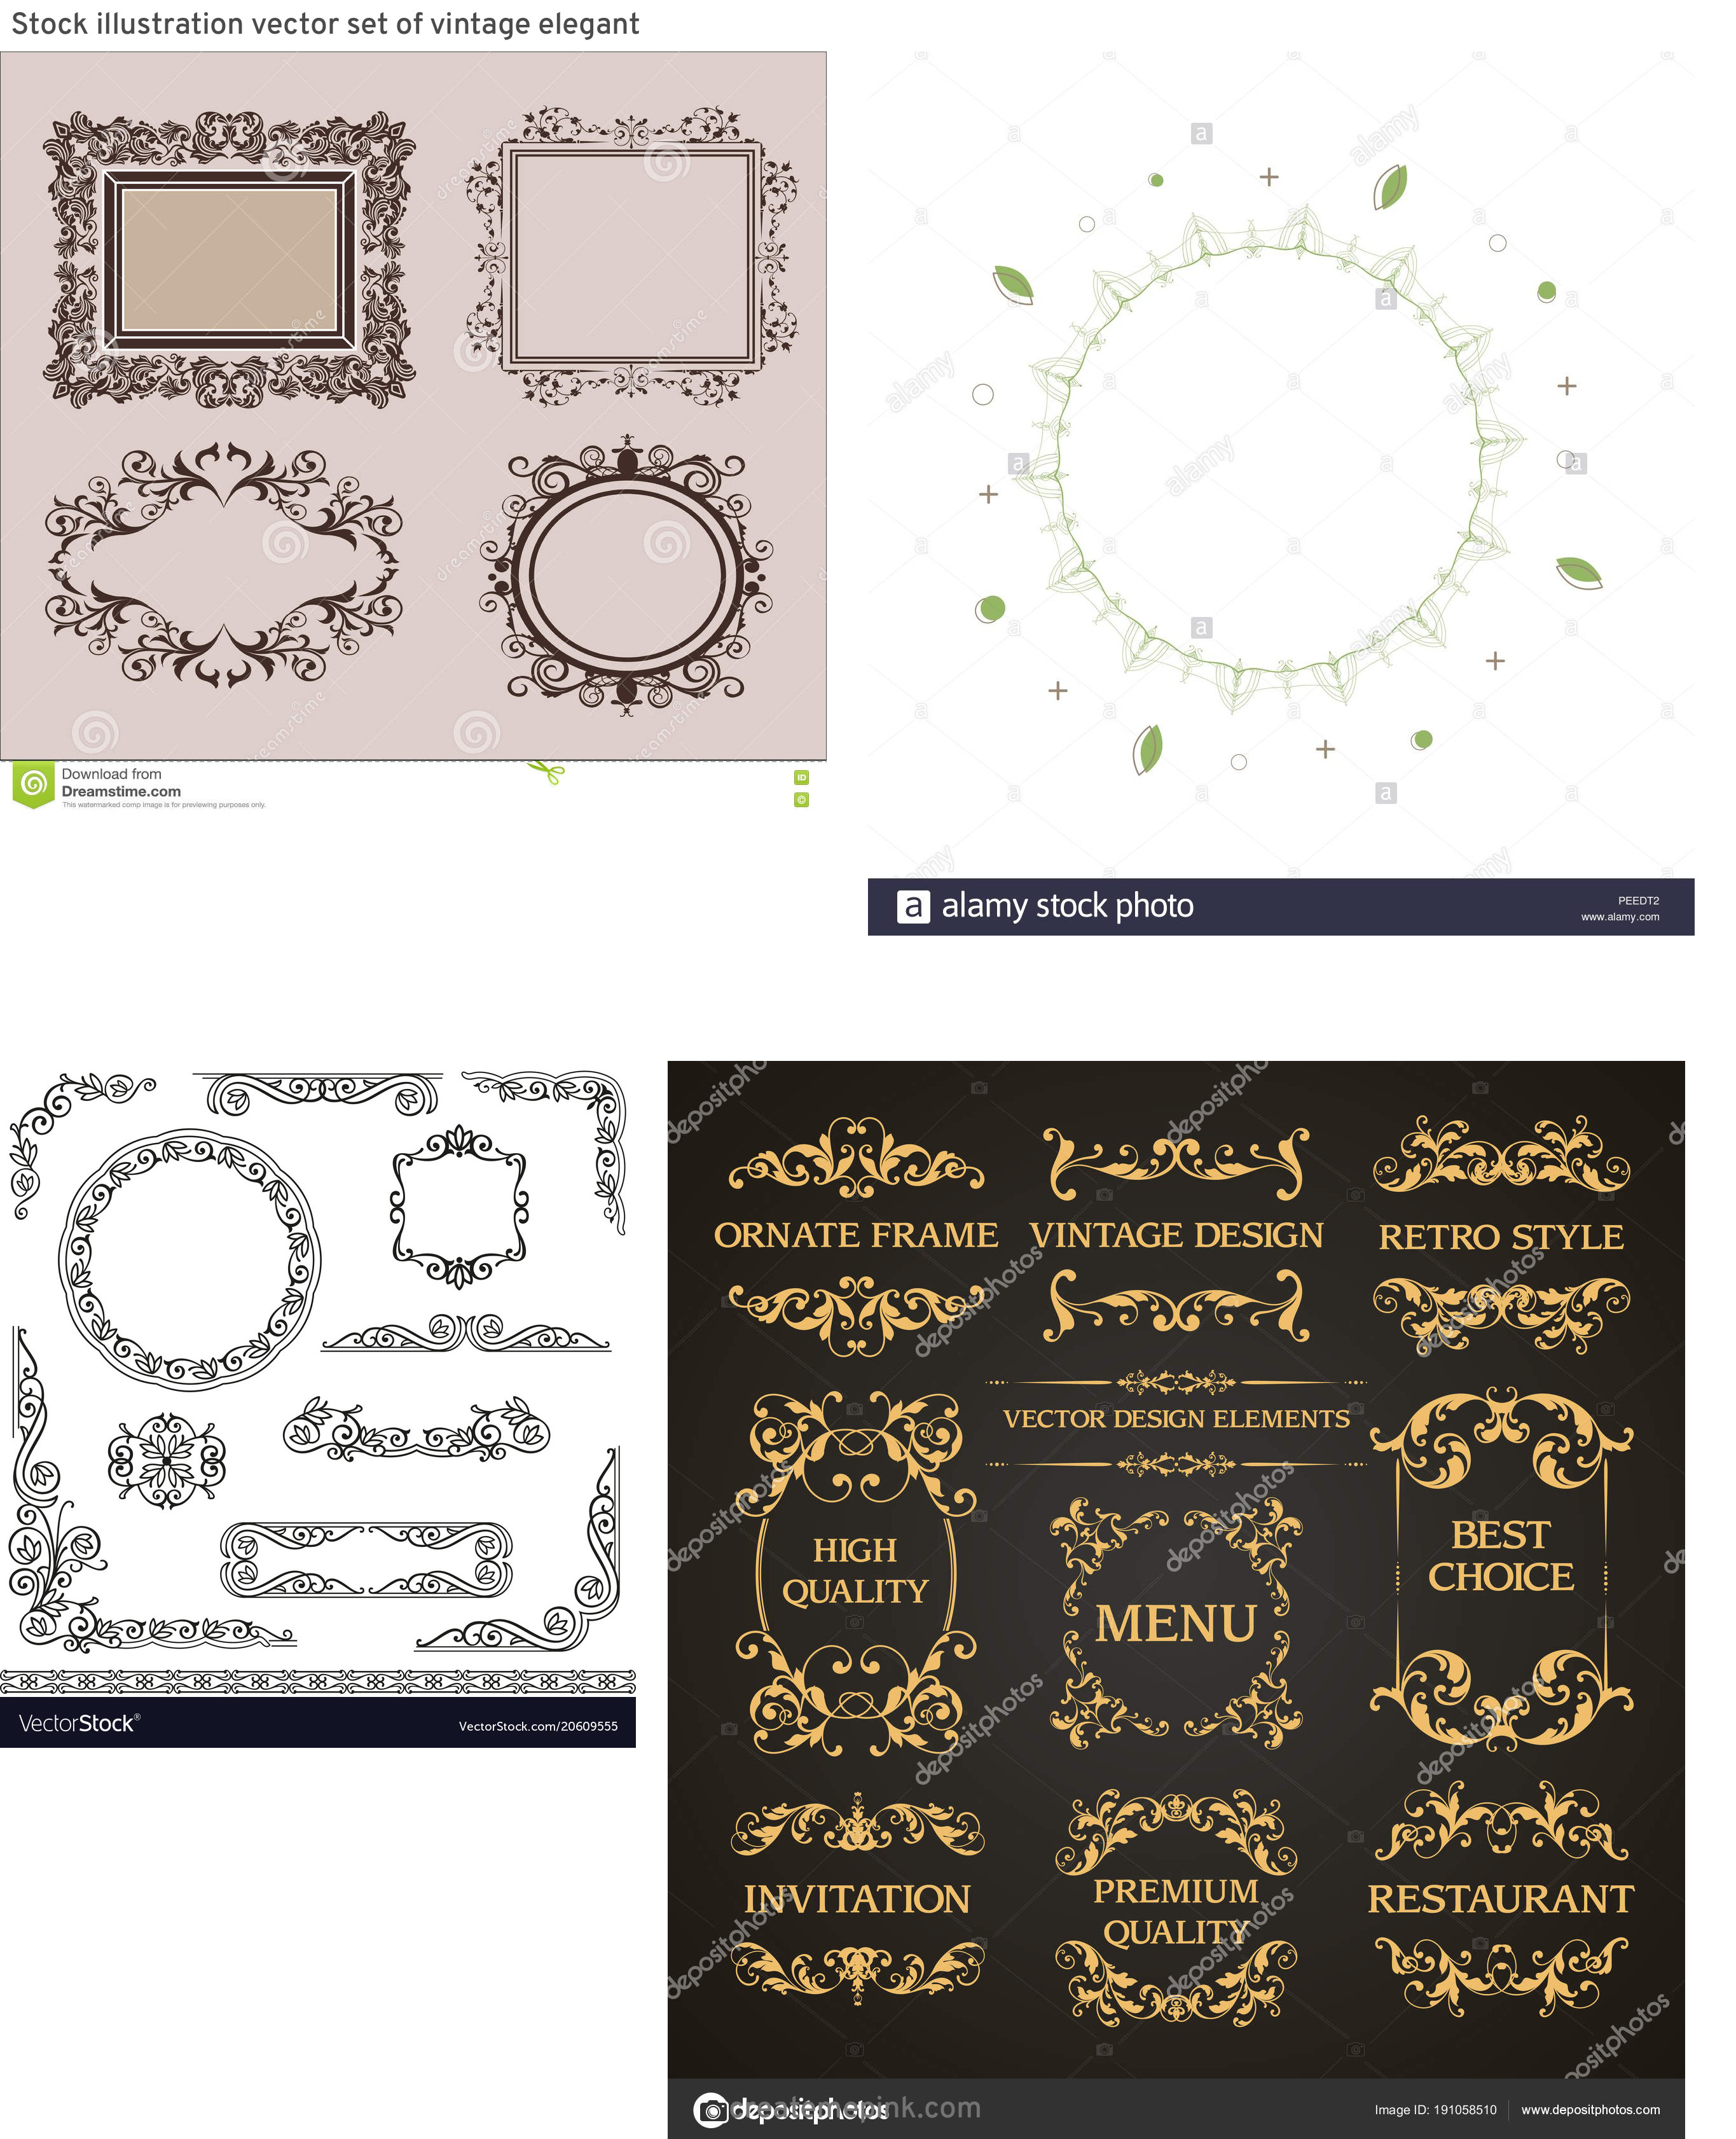 Elements Of Vector Vintage Decorative Frame: Stock Illustration Vector Set Of Vintage Elegant